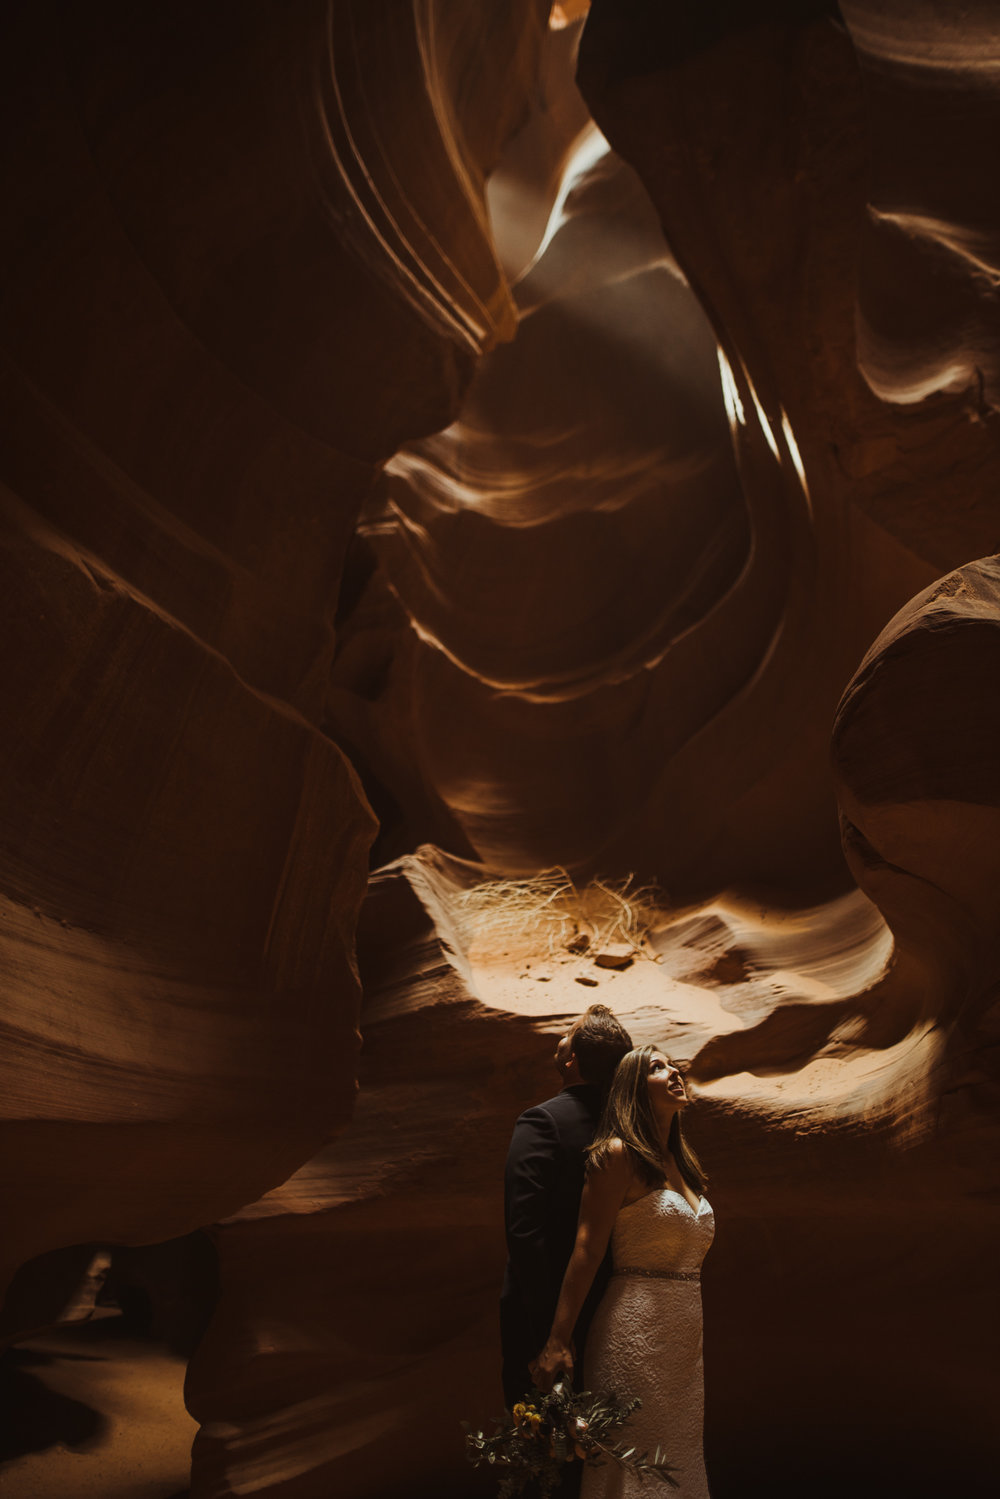 ©Isaiah + Taylor Photography - Lake Powell Elopement & Antelope Canyon & Horseshoe Bend, Page, Arizona-73.jpg